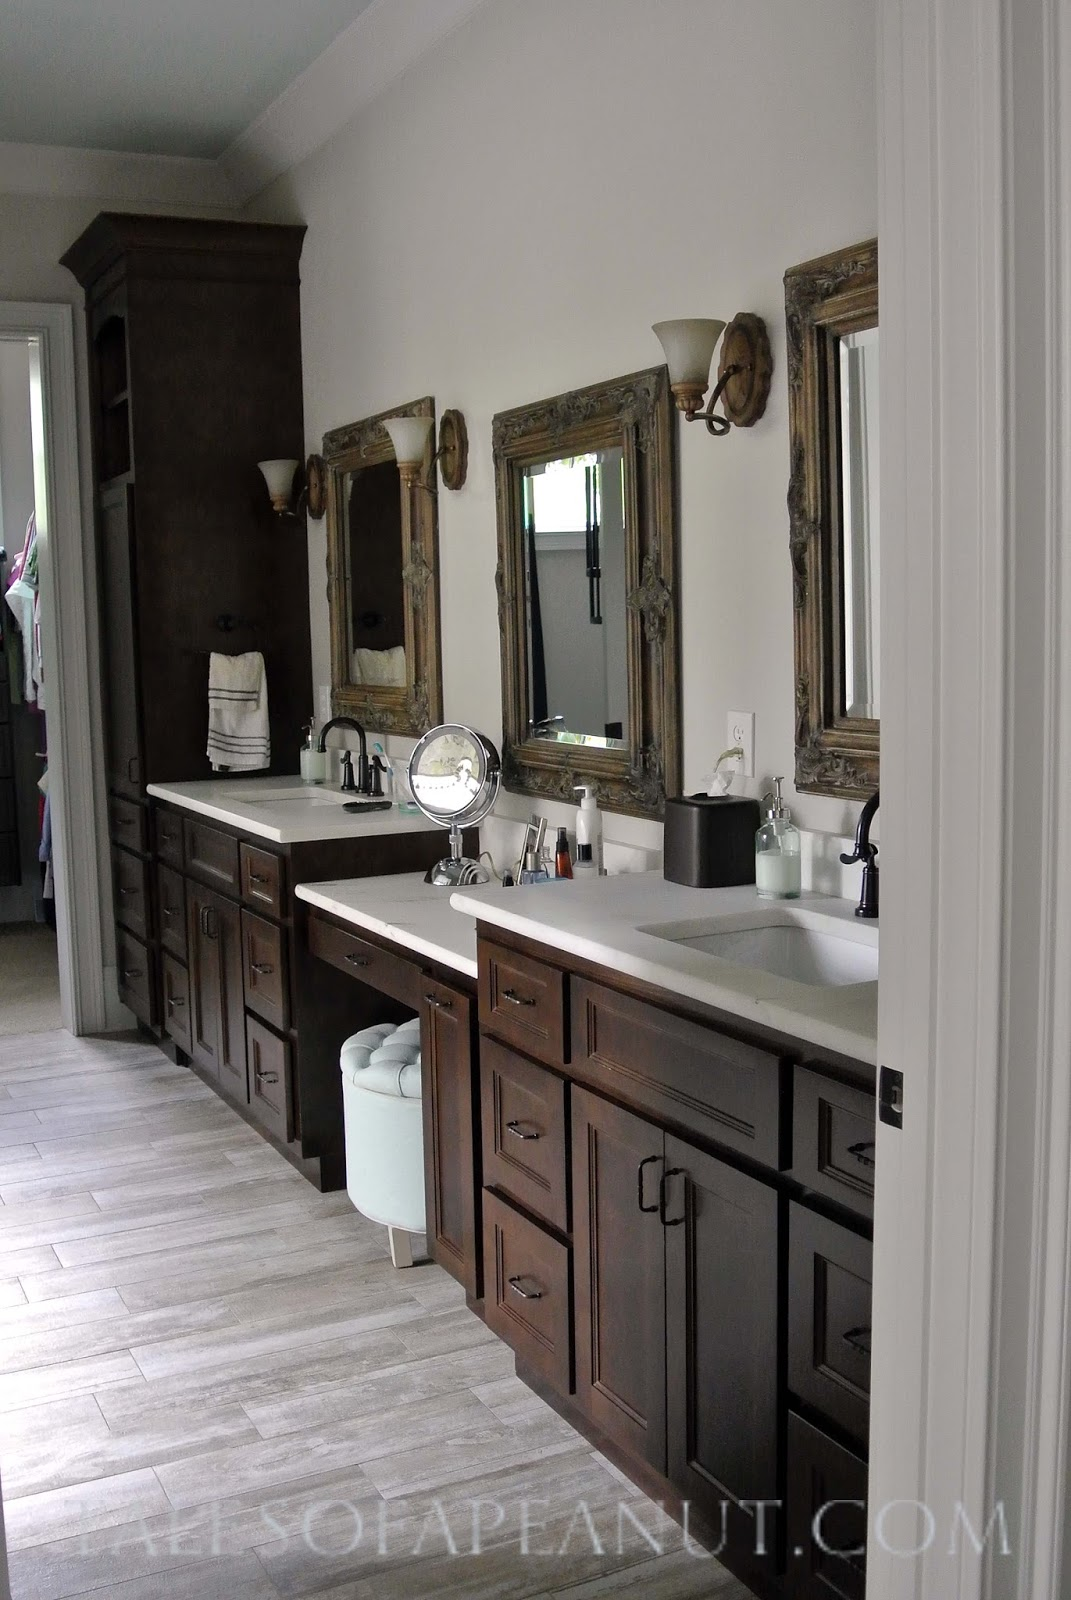 Building a Home - Master Bathroom Reveal - Jenn Elwell